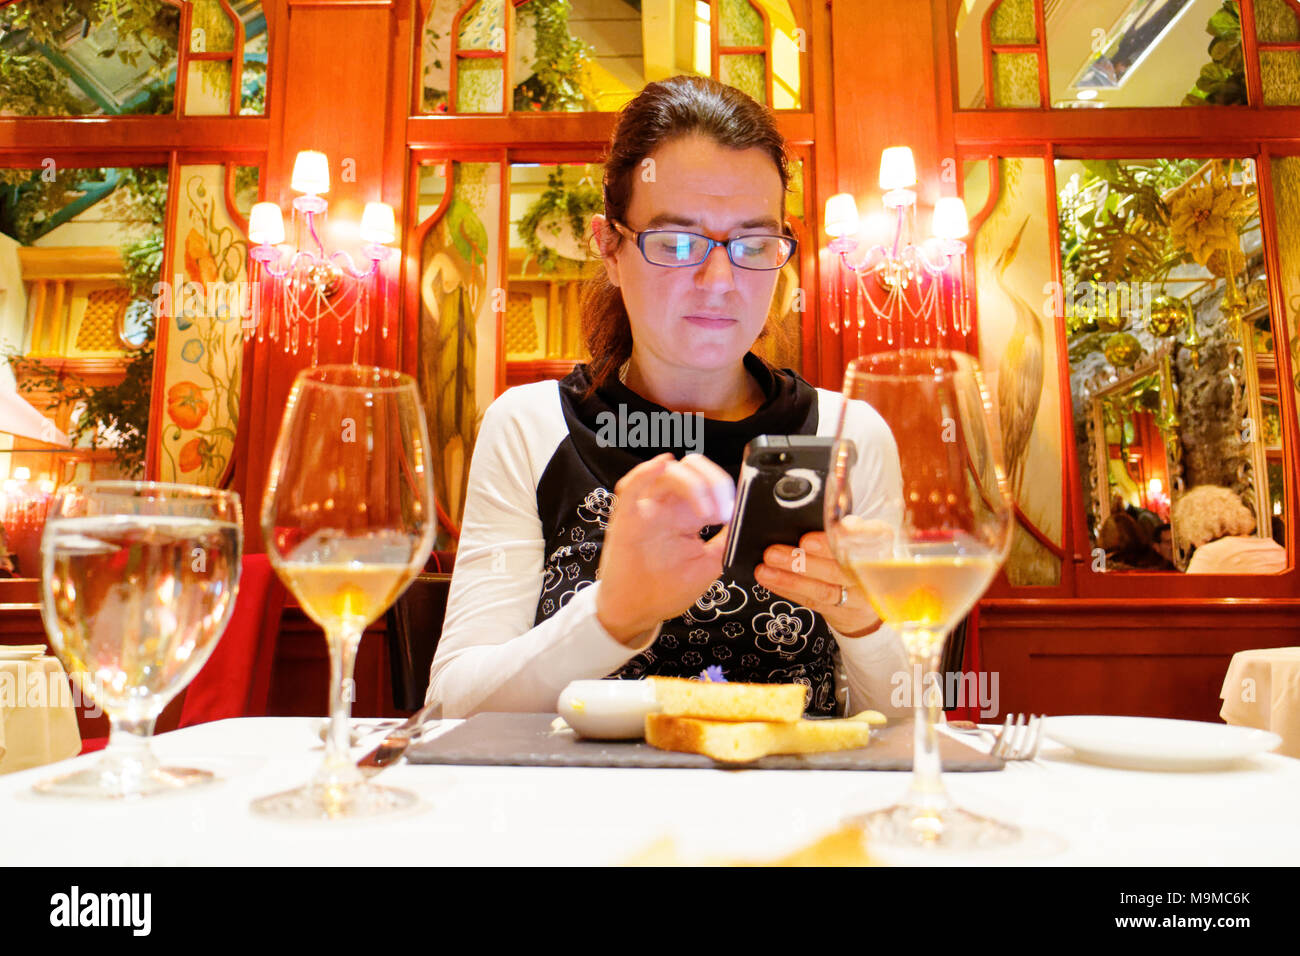 A woman seated using her mobile phone in the exclusive Saint Amour restaurant in Quebec City - Stock Image